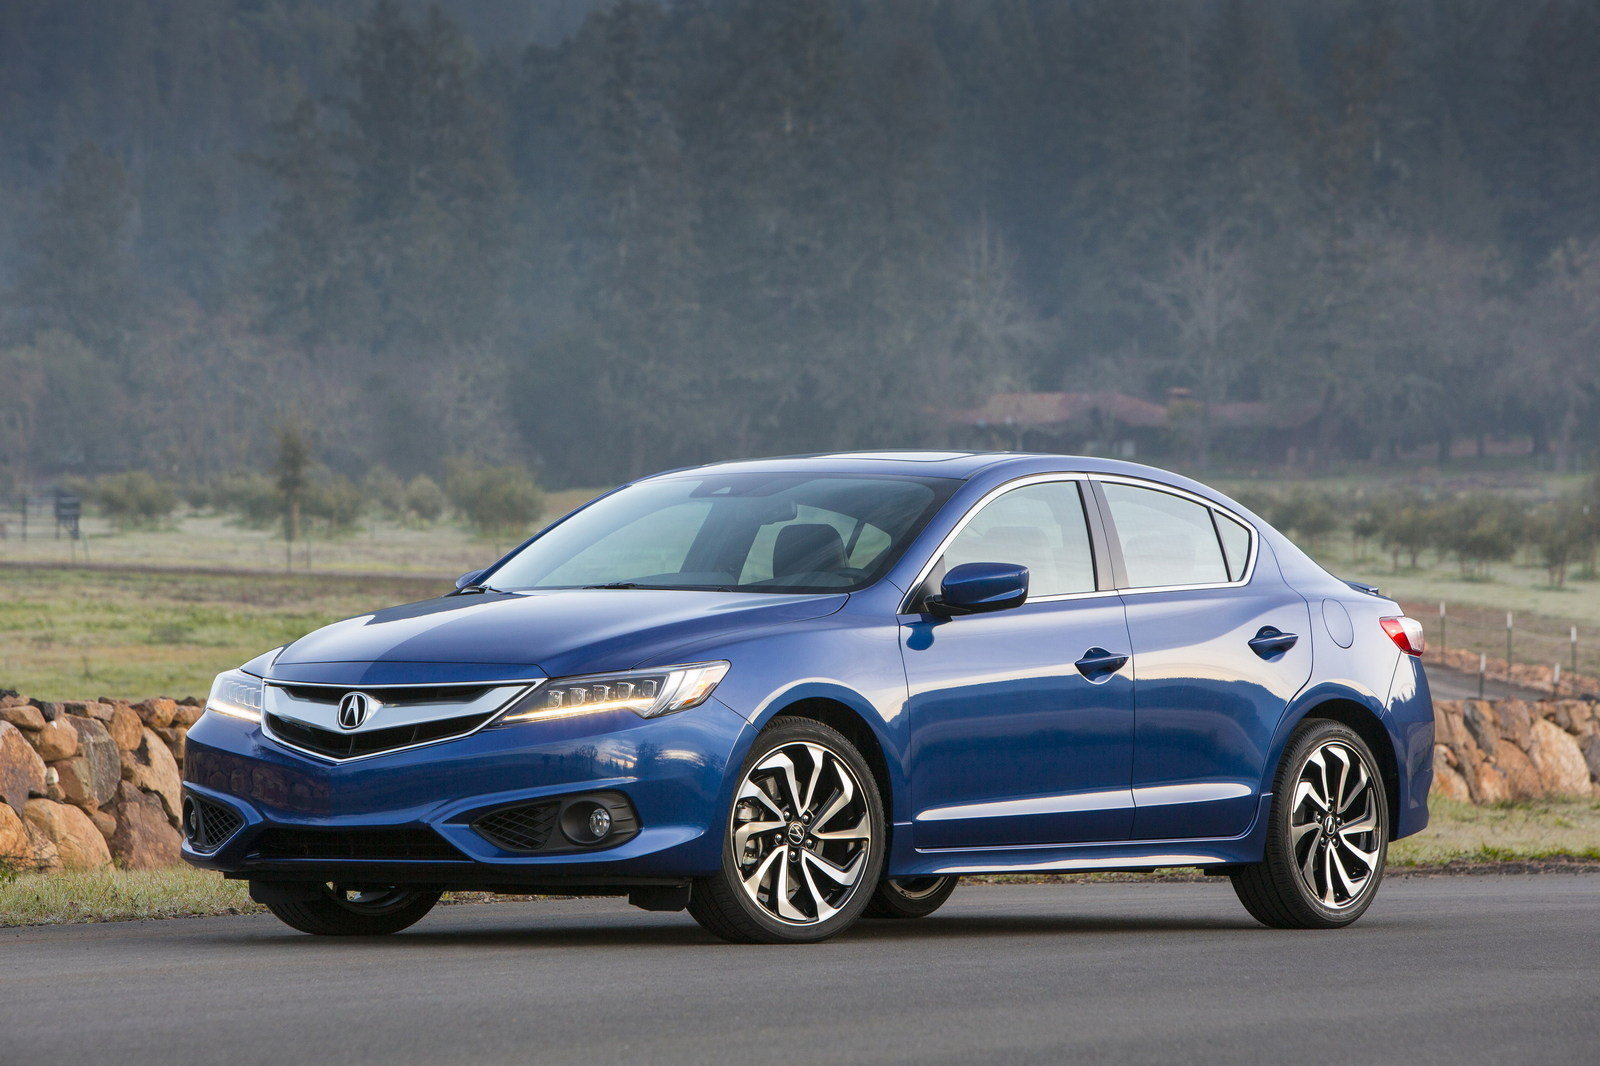 2016 2017 acura ilx picture 672388 car review top speed. Black Bedroom Furniture Sets. Home Design Ideas